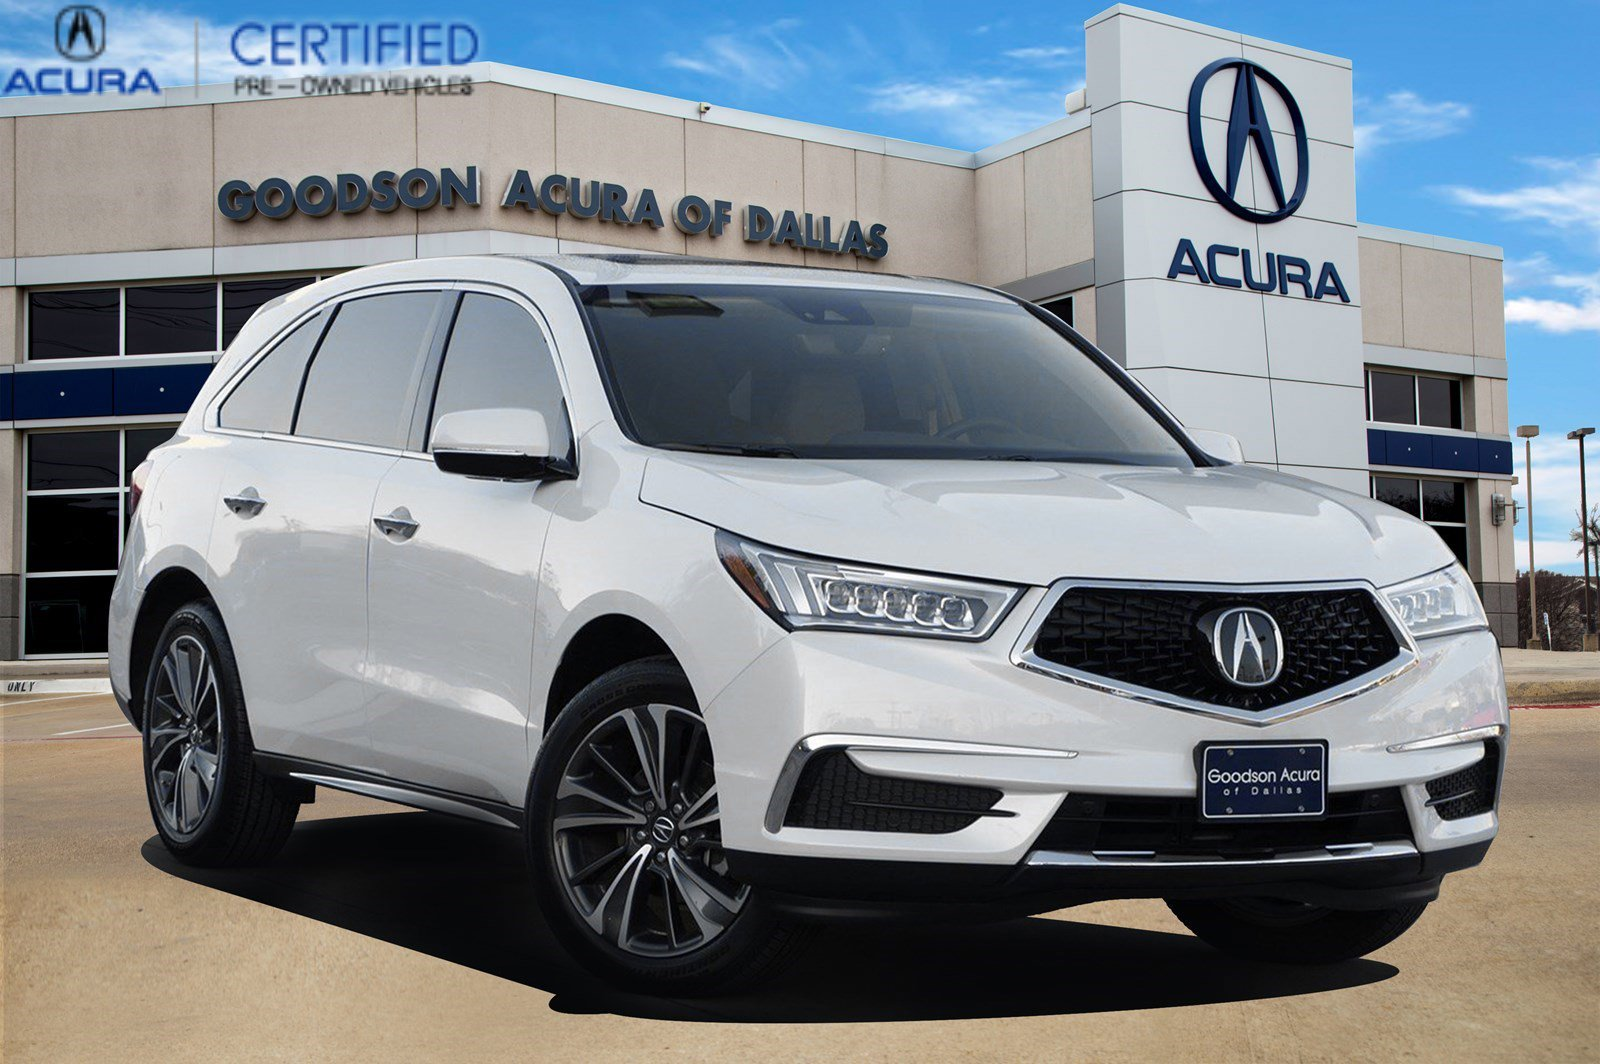 2020 Acura MDX FWD w/ Technology Package image